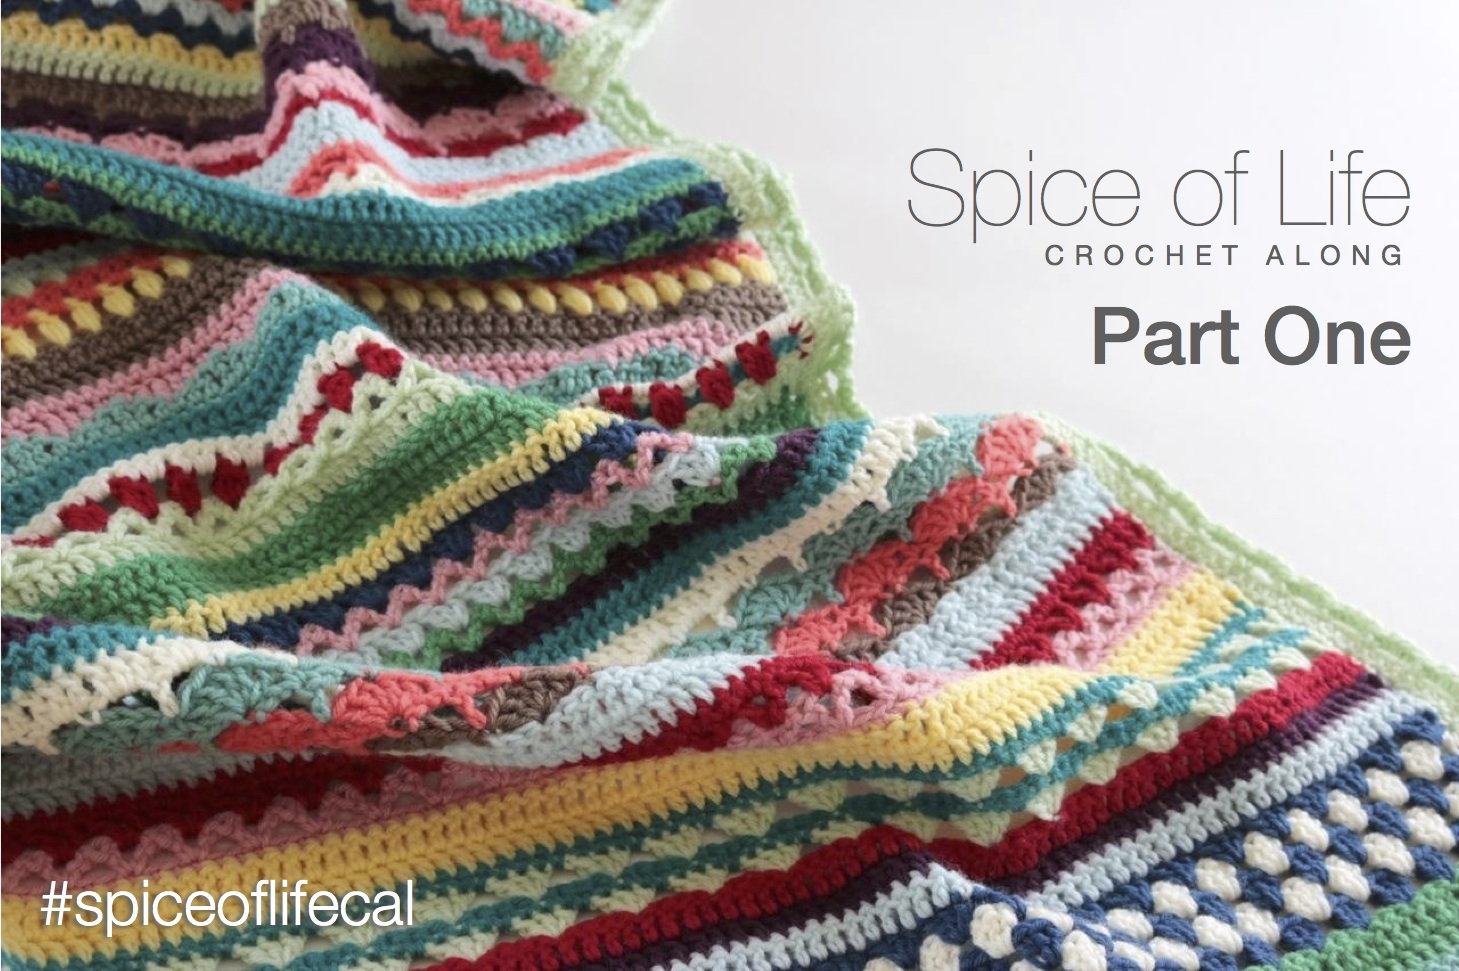 Crochet Along : Spice of Life Crochet Along